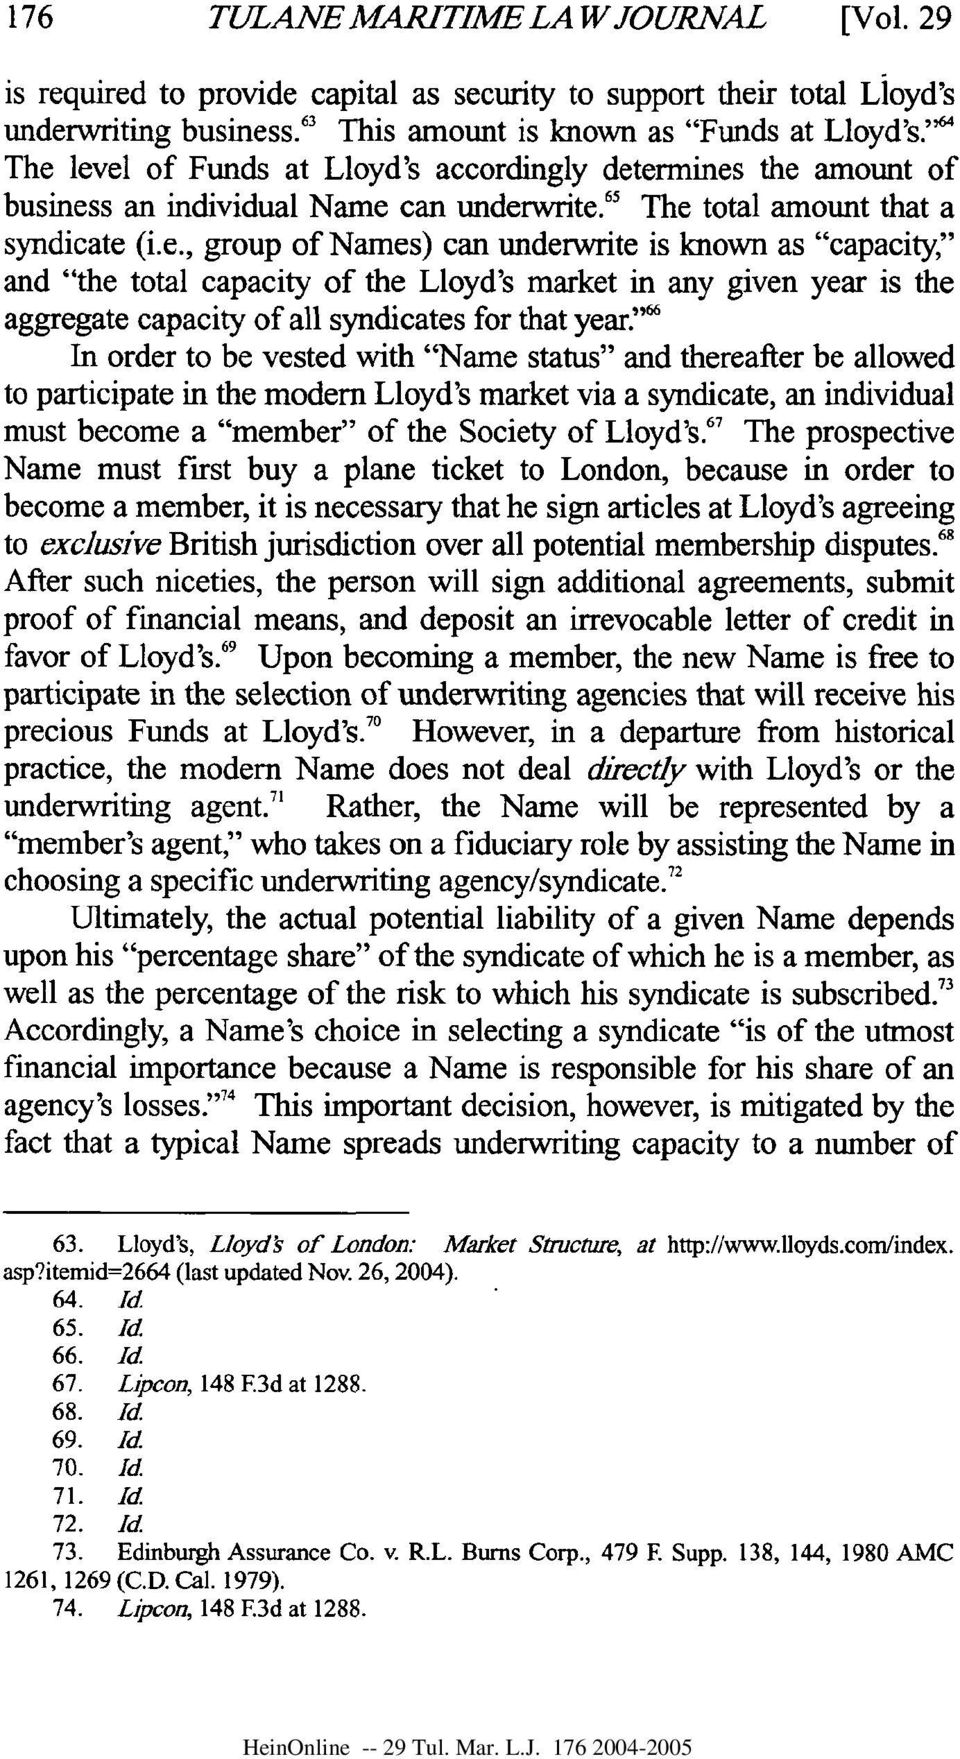 "'' In order to be vested with ""Name status"" and thereafter be allowed to participate in the modem Lloyd's market via a syndicate, an individual must become a ""member"" of the Society of Lloyd's."